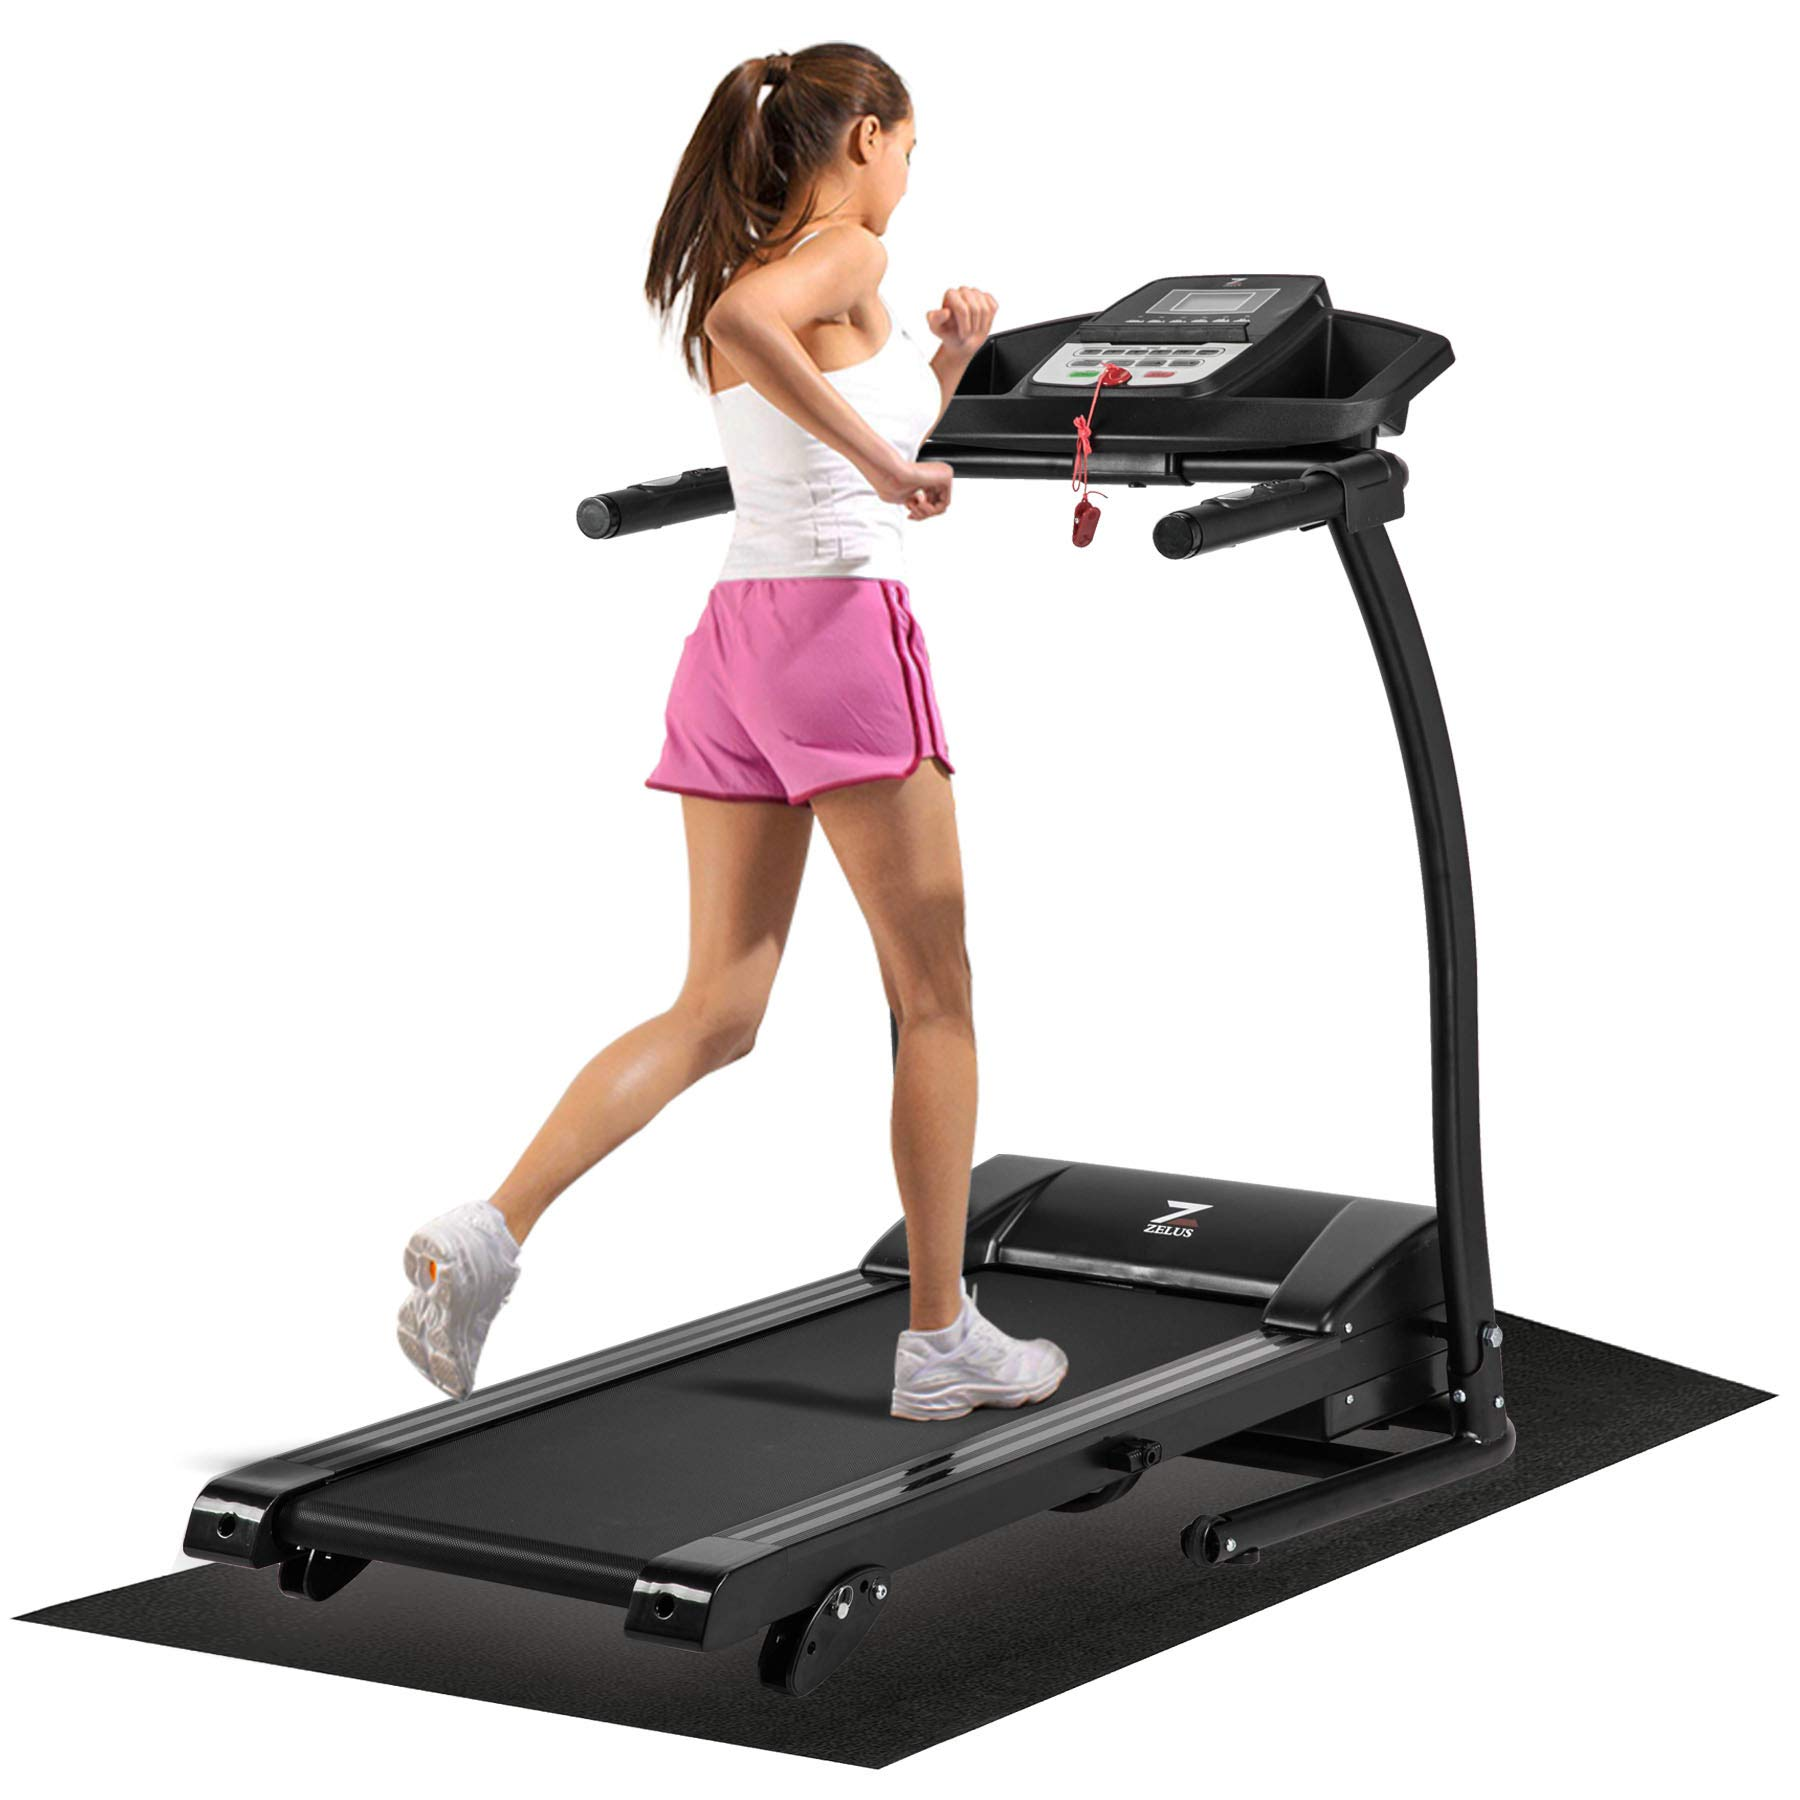 ZELUS 1100W Folding Treadmill Electric Motorized Running Machine with Downloadable Sports App Control Walking and Running, Cup Holder, MP3 Player and Wheels Easy (Upgraded Treadmill with Mat) by Z ZELUS